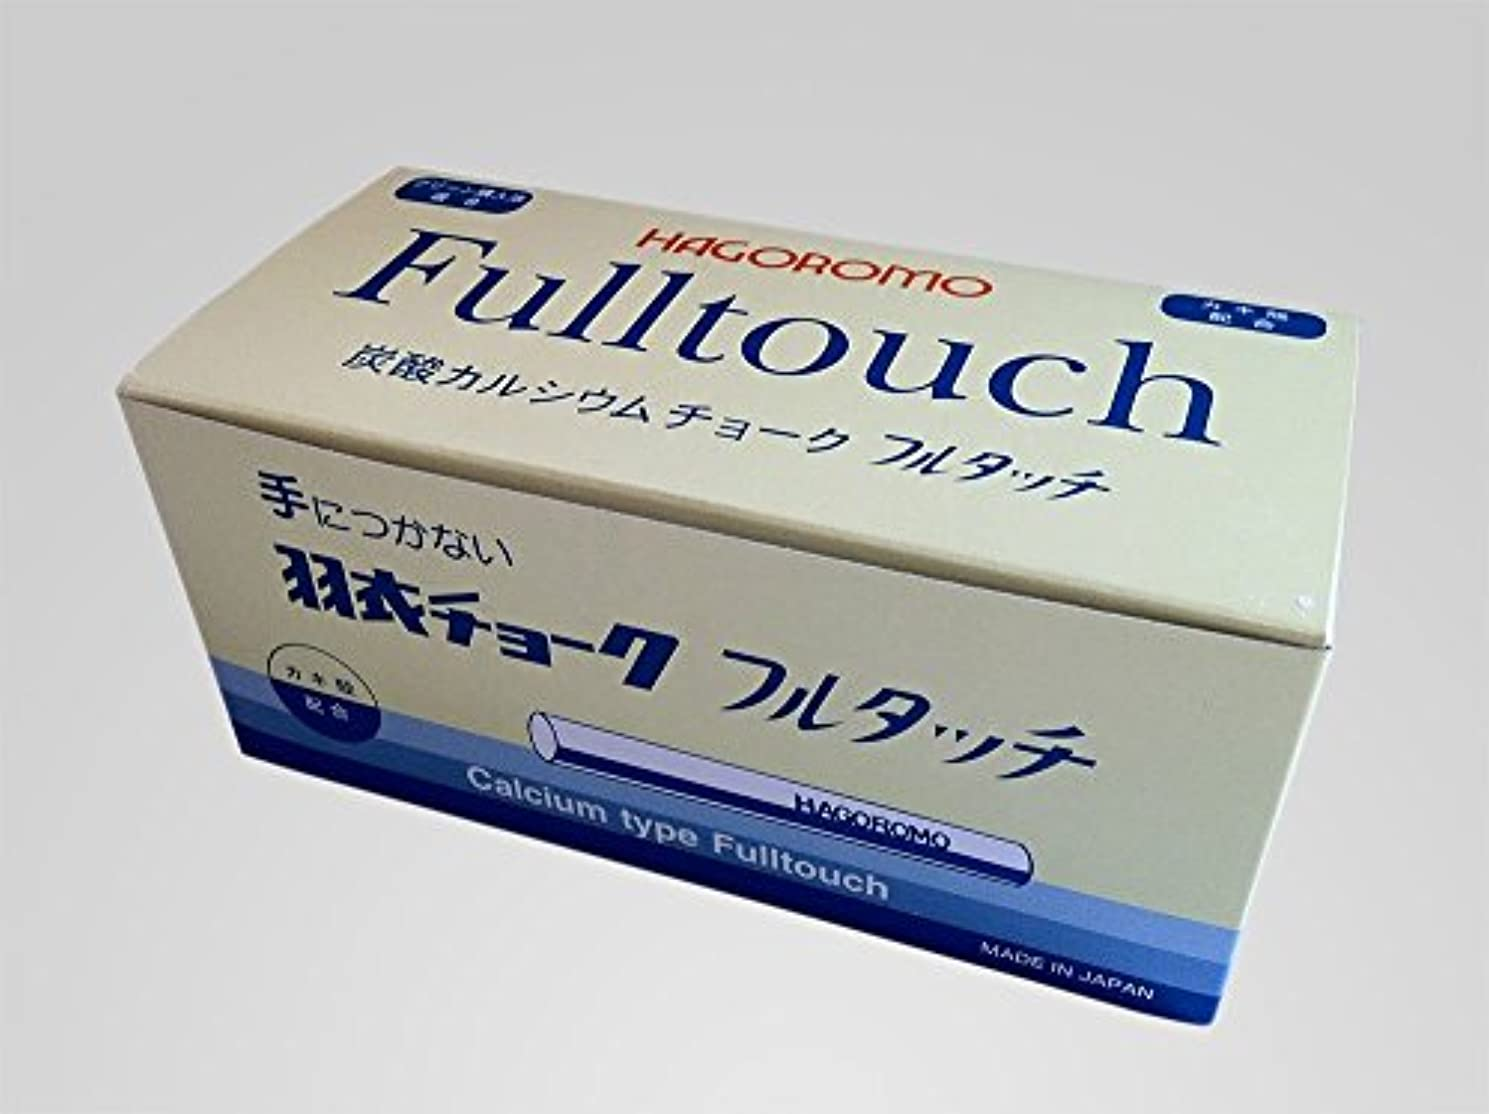 Hagoromo Fulltouch White Chalk 72pcs